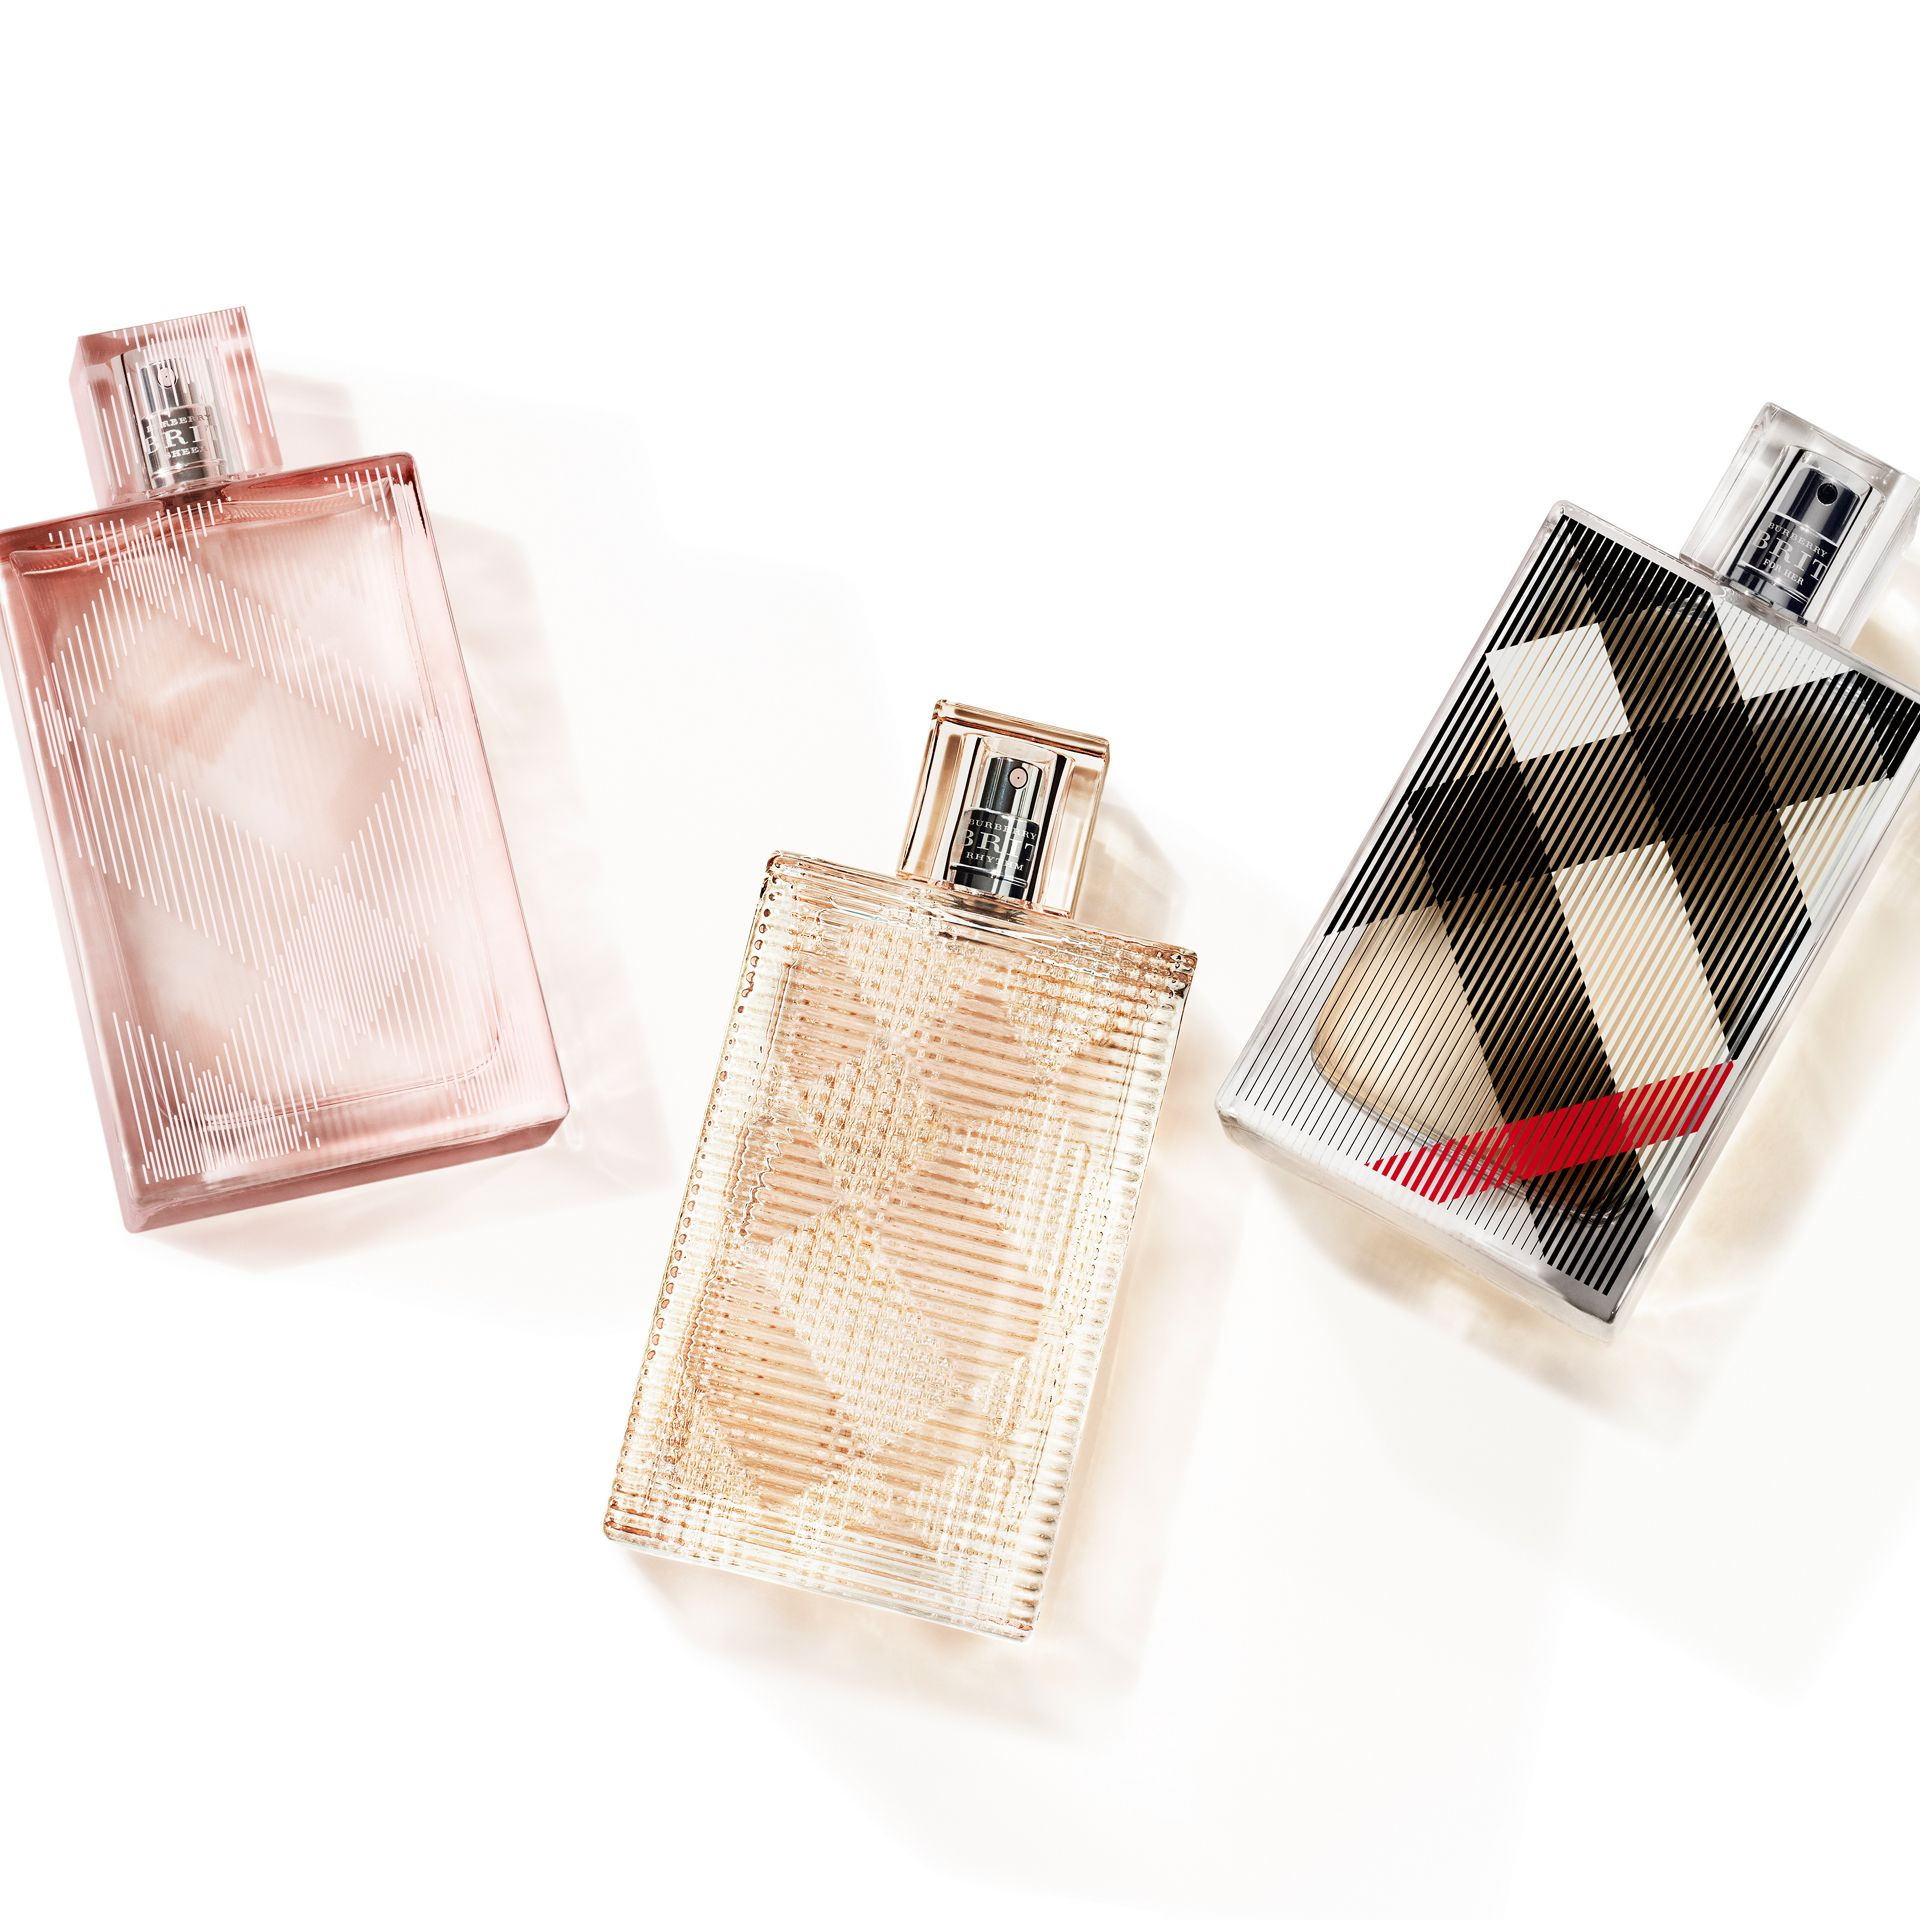 Burberry Brit Sheer Eau de Toilette 200ml - Women | Burberry Singapore - gallery image 3